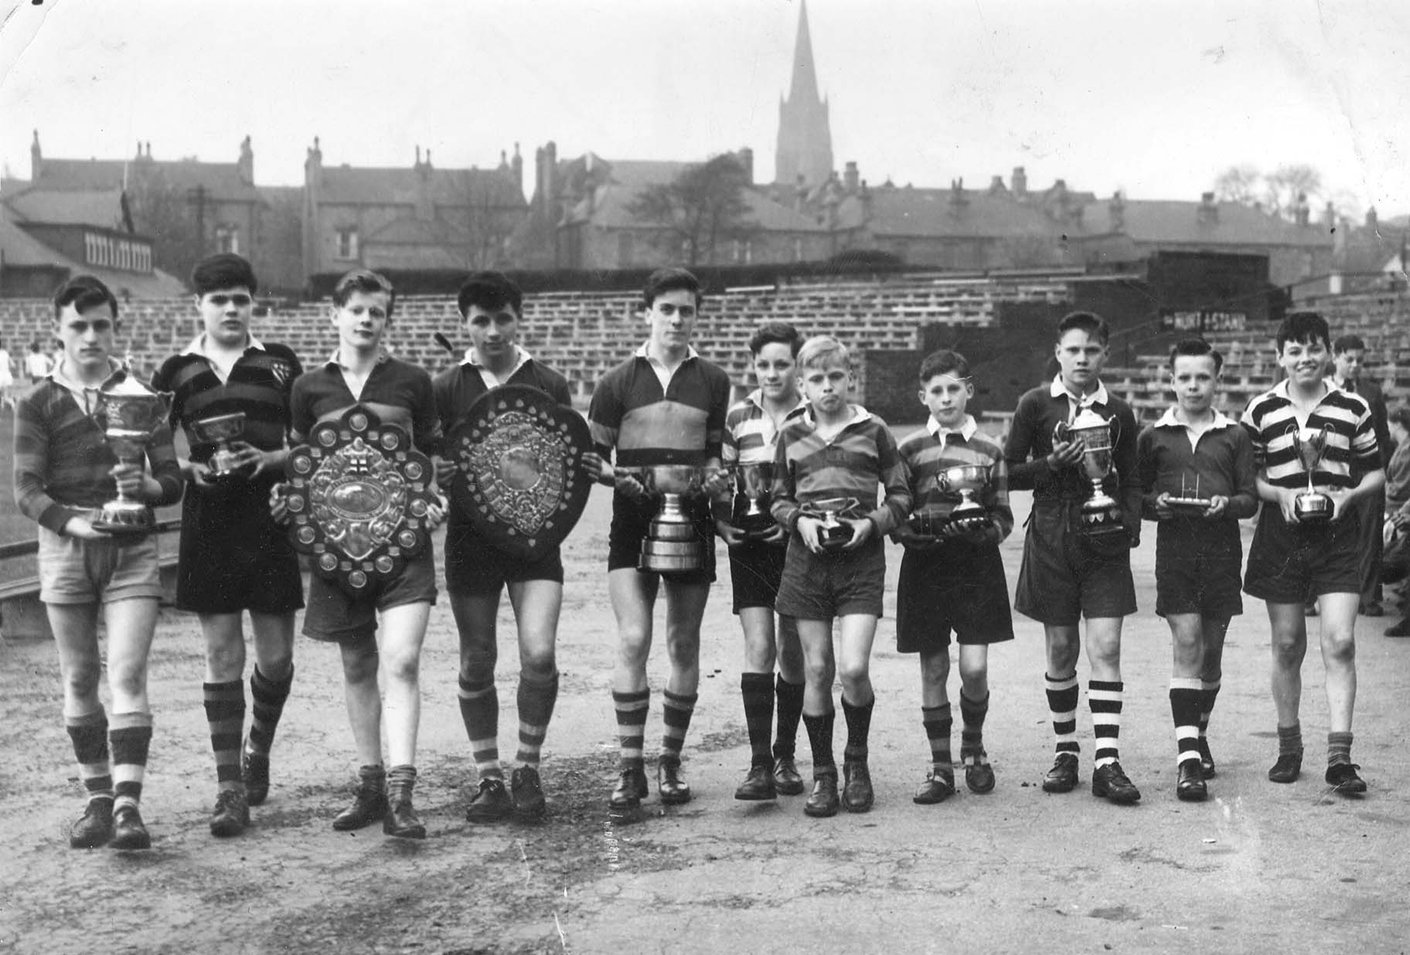 Leeds Rugby League Club Ground, representatives of winning rugby league school teams, 1954, Ron Davies, Leodis - A photographic archive of Leeds, In Copyright